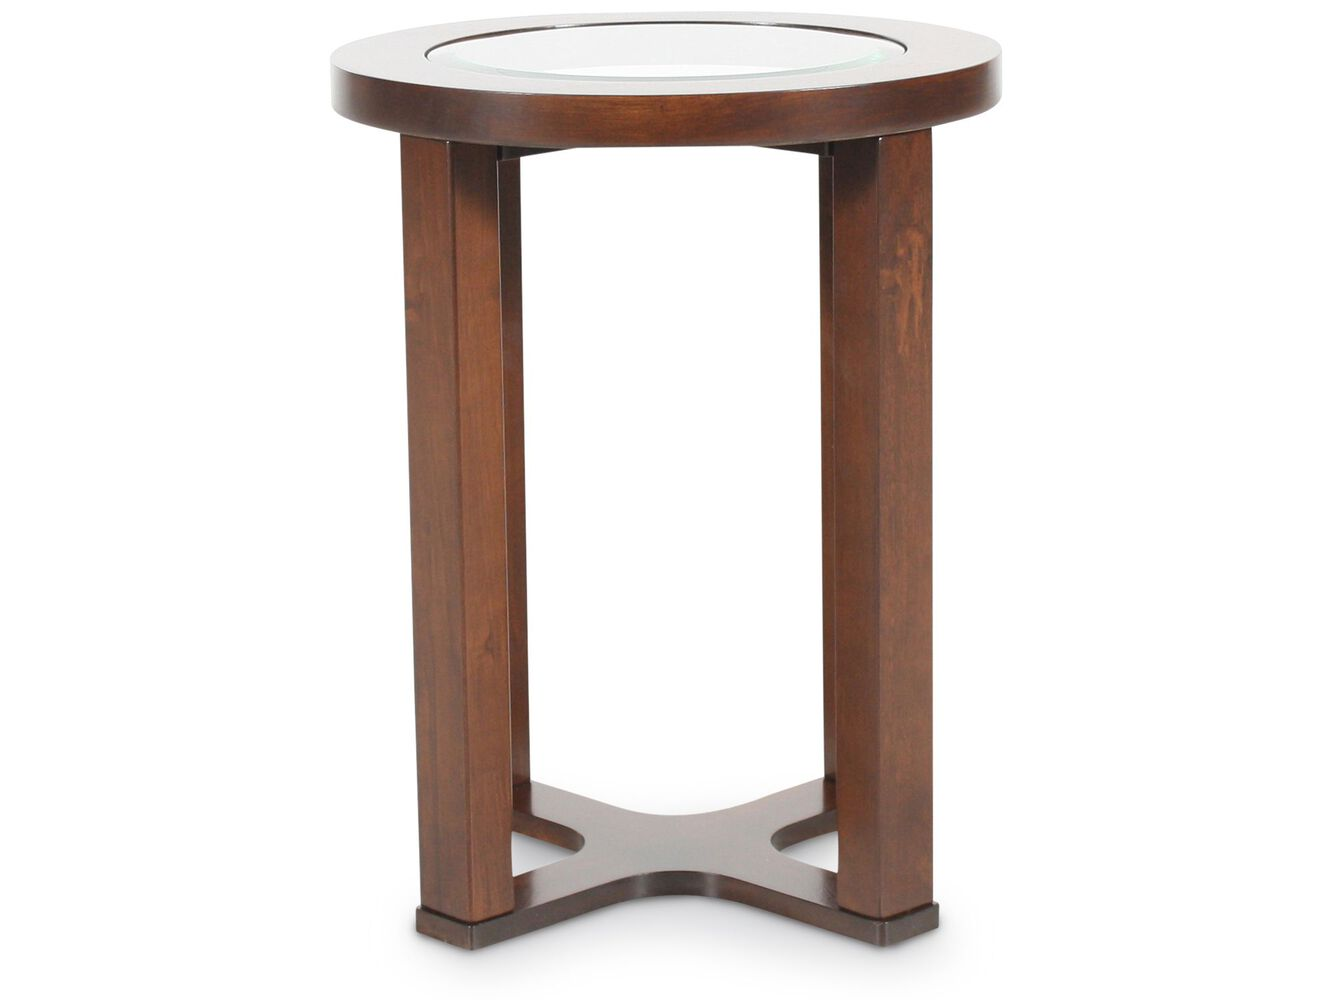 Round beveled glass contemporary end table in dark merlot for Round end tables